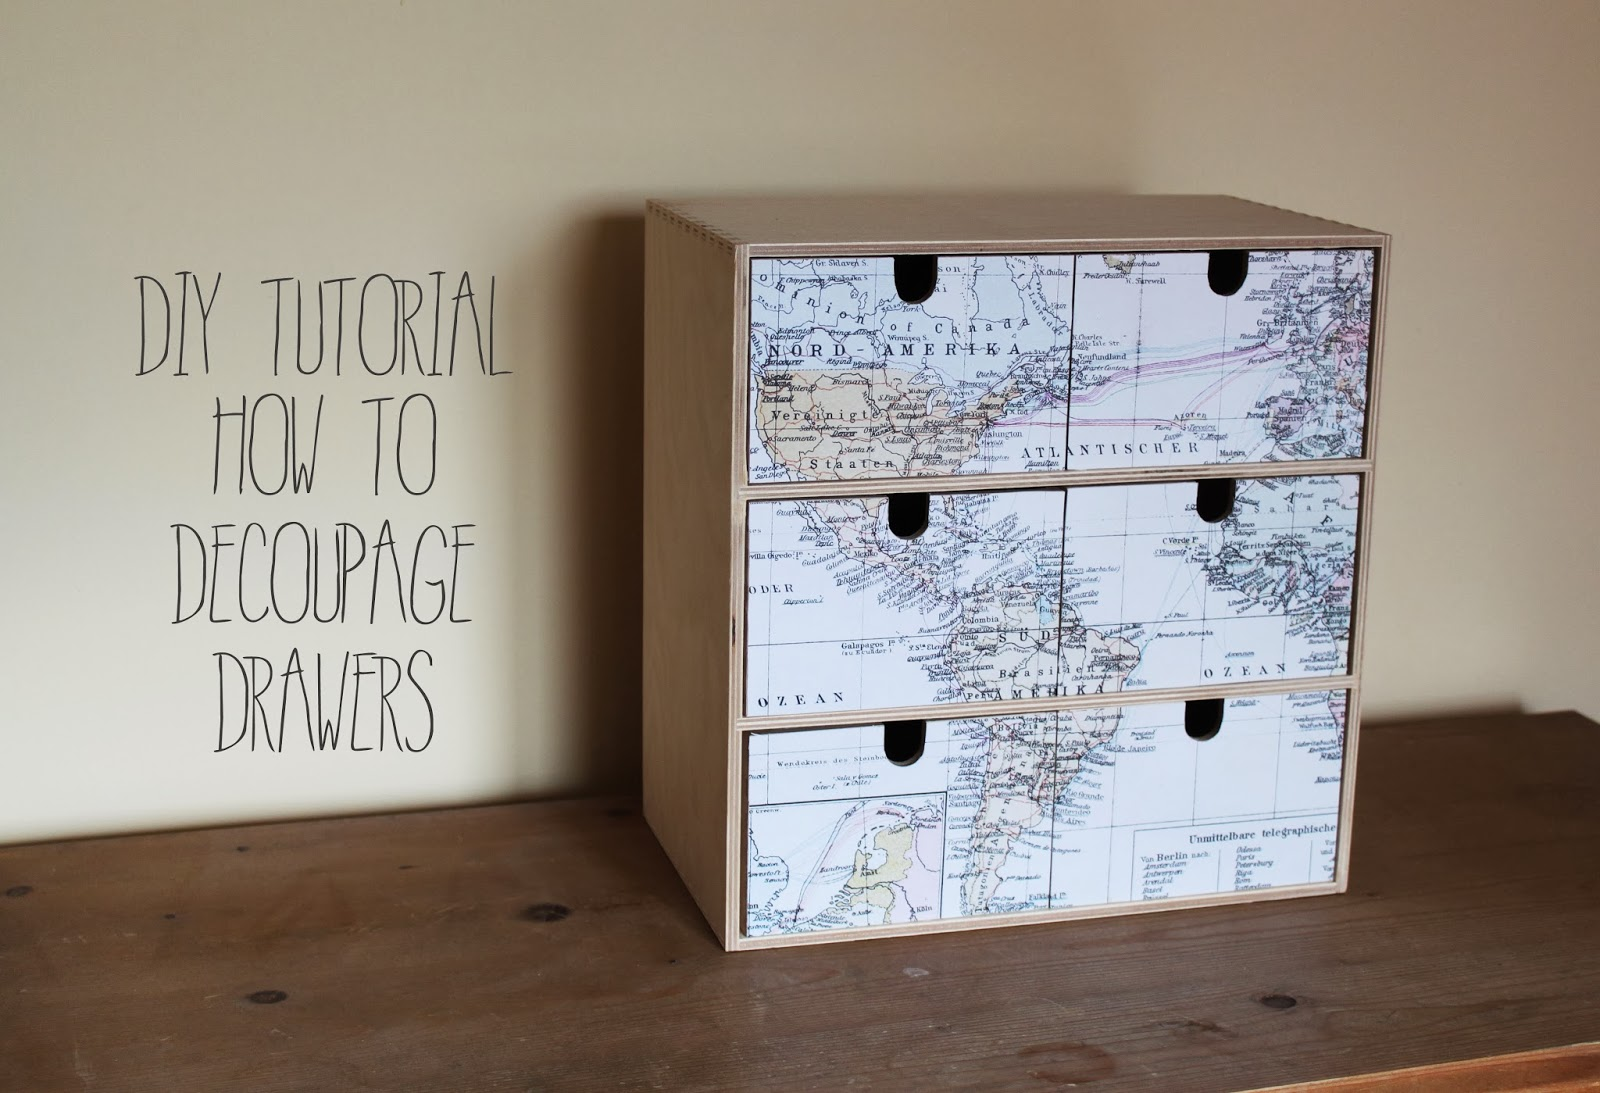 DIY Tutorial: How To Decoupage Drawers (Or Other Wooden Furniture!)